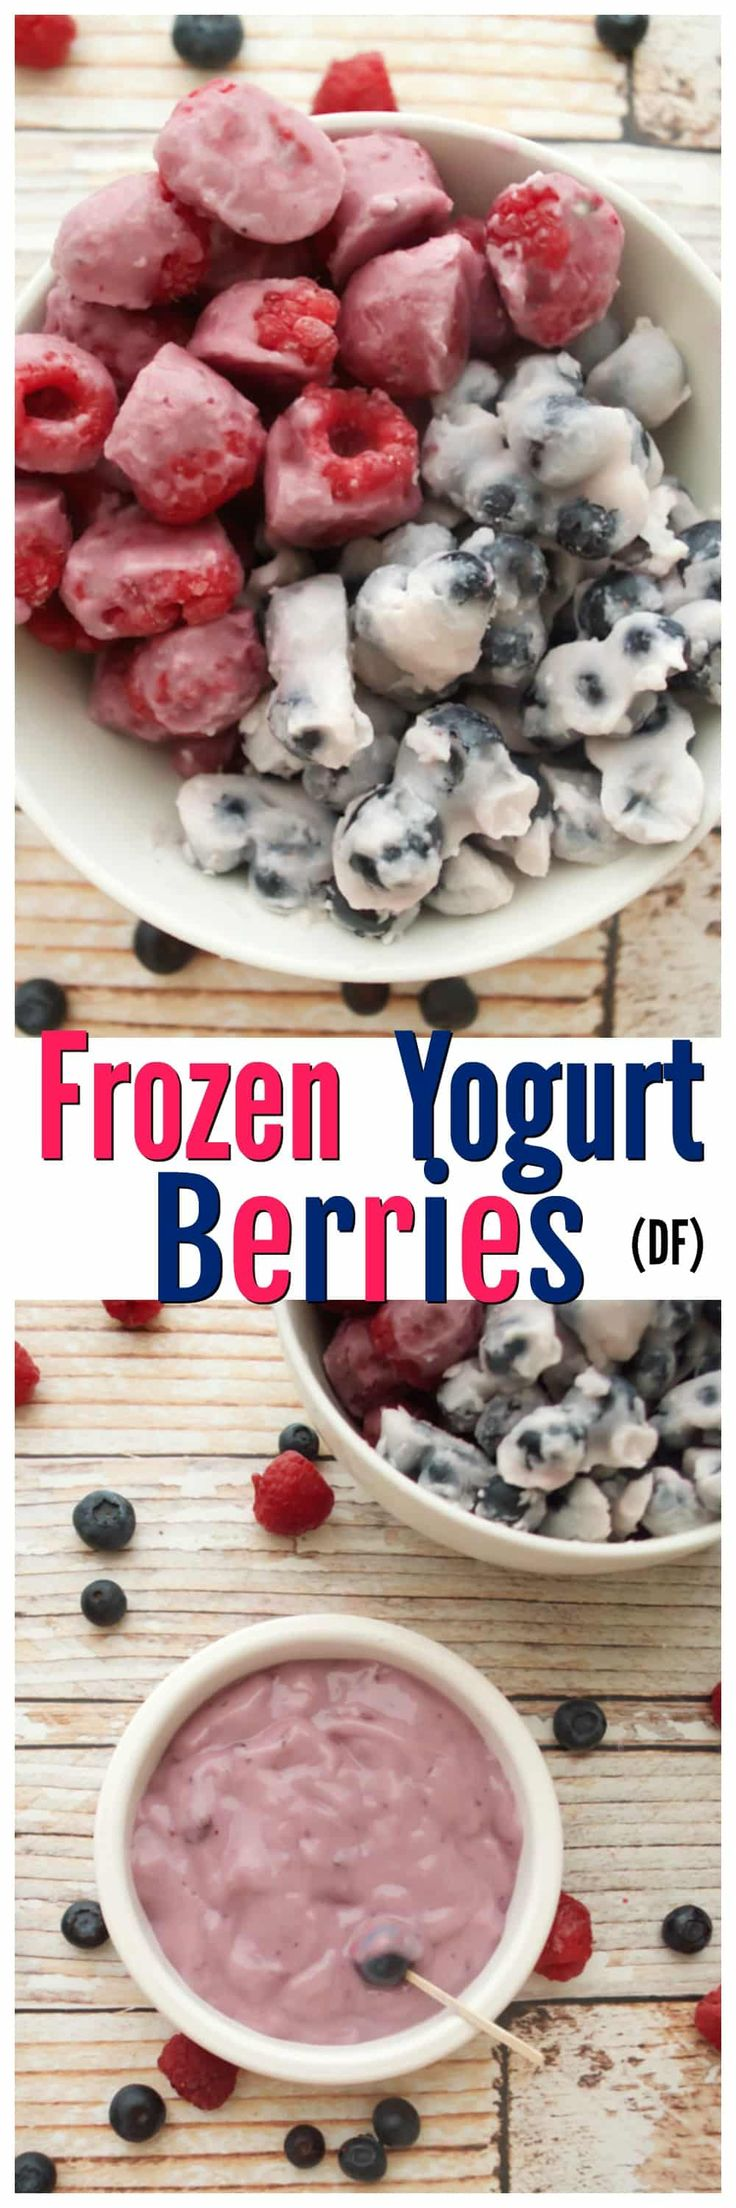 Enjoy a healthy snack twist with this frozen yogurt berry recipe that's dairy-free